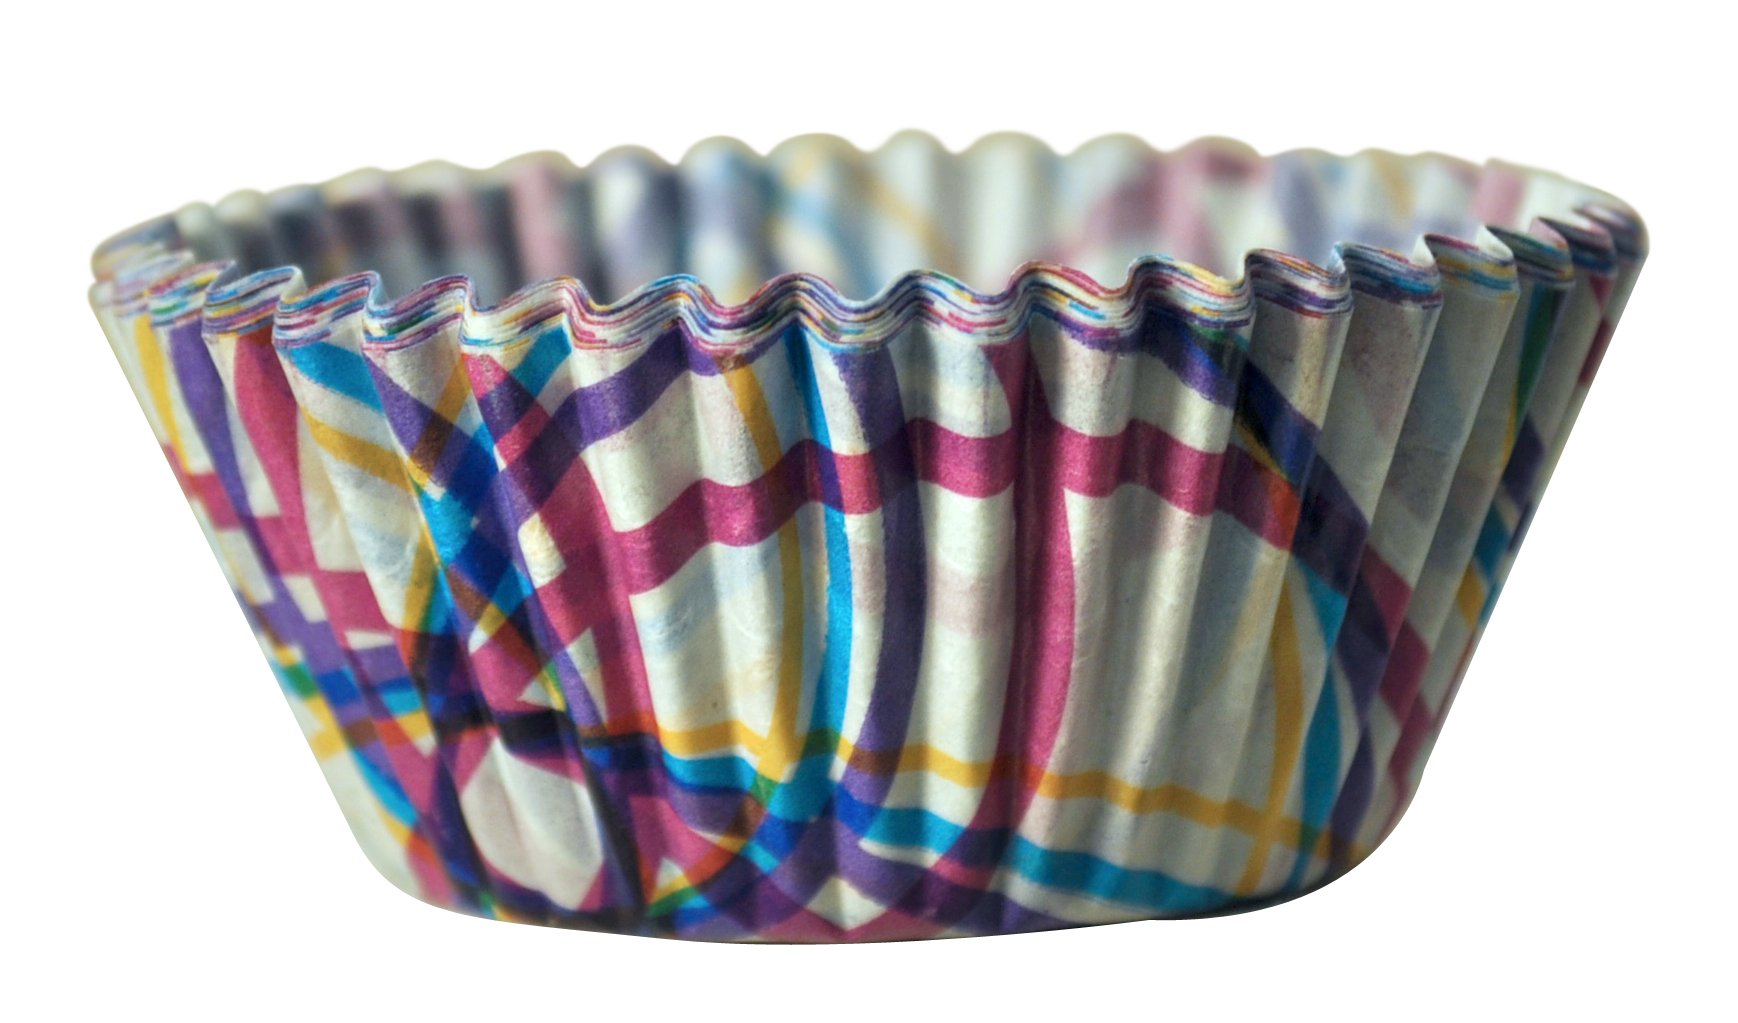 Reynolds Baking Cups, Party Variety Pack, 864 Cups, 24 Count by Reynolds (Image #4)